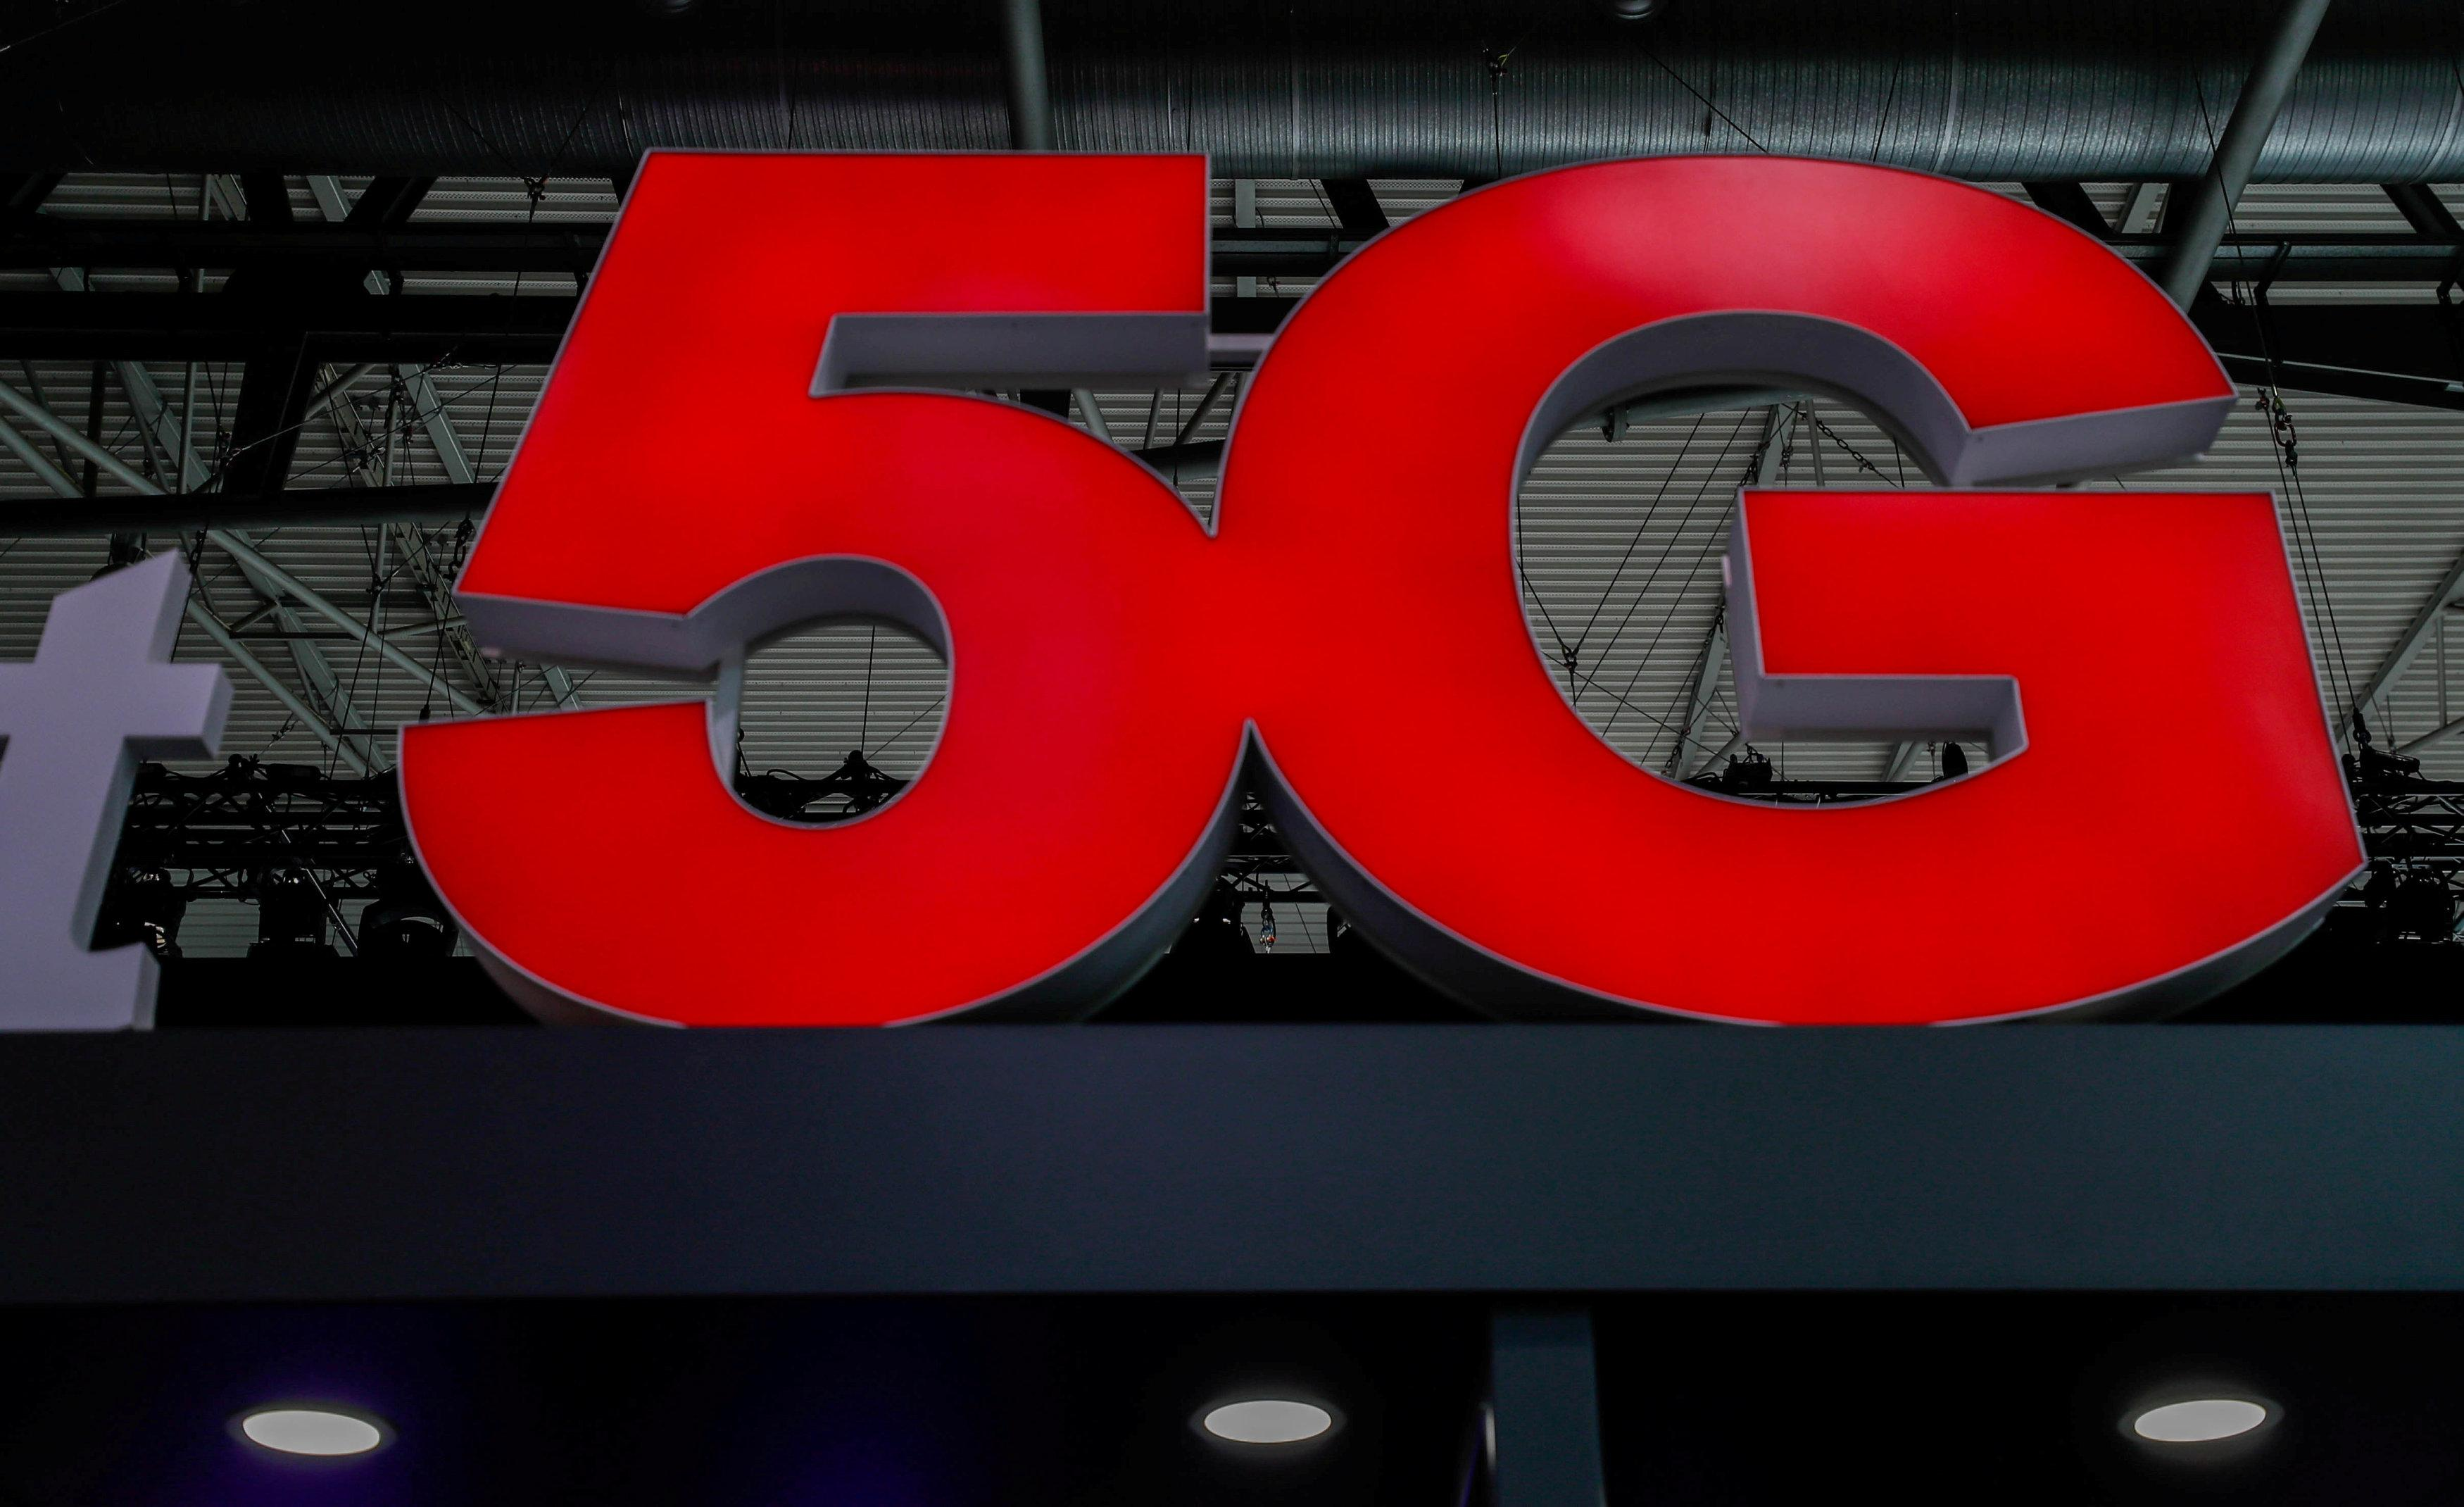 Nokia T Mobile Us Agree 35 Billion Deal Worlds First Big 5g